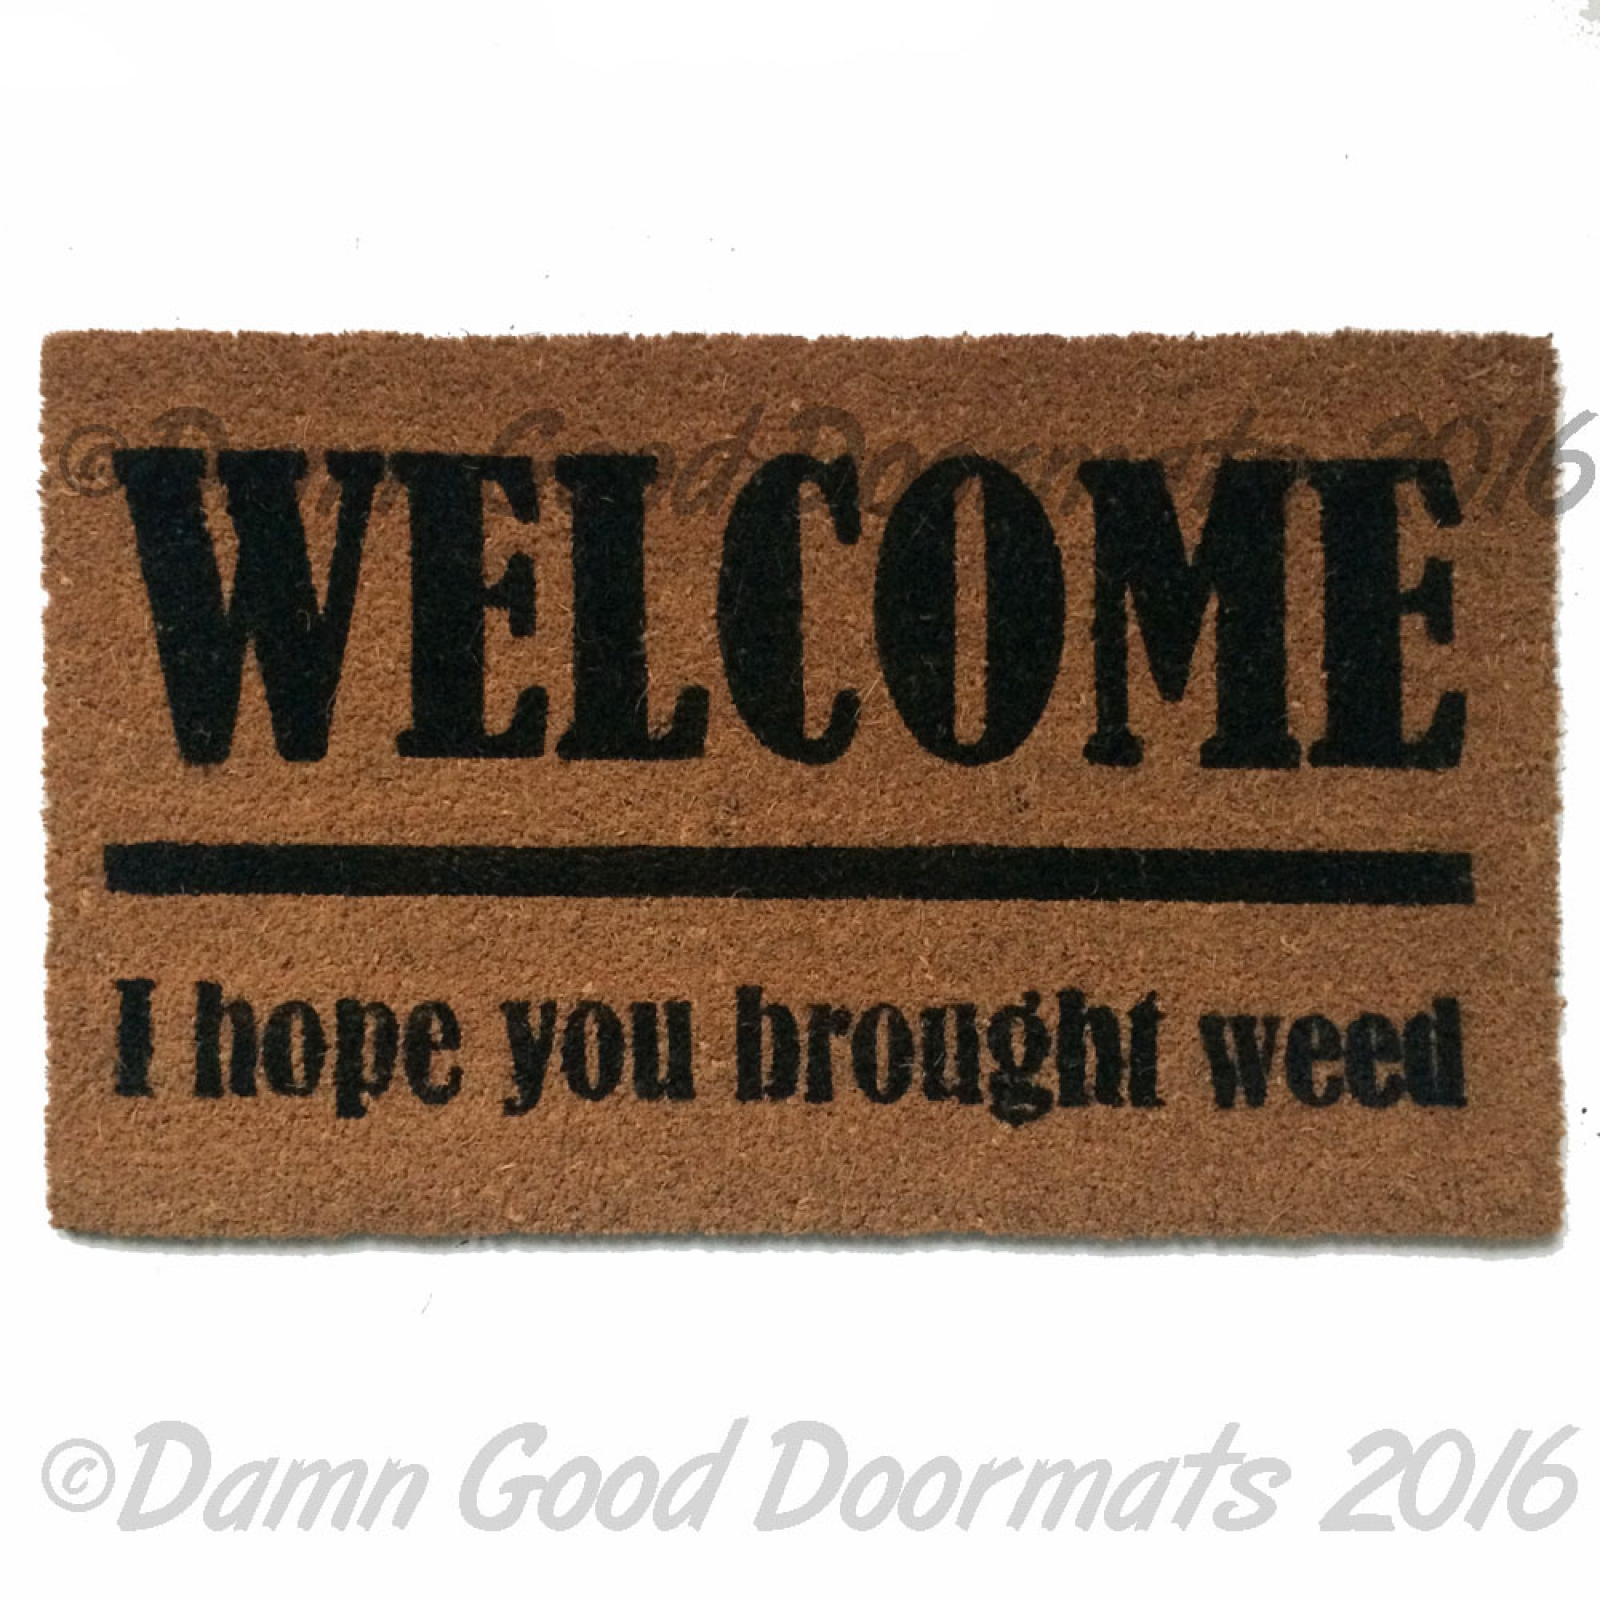 Welcome I Hope You Brought Wine Beer Tacos Cake Weed